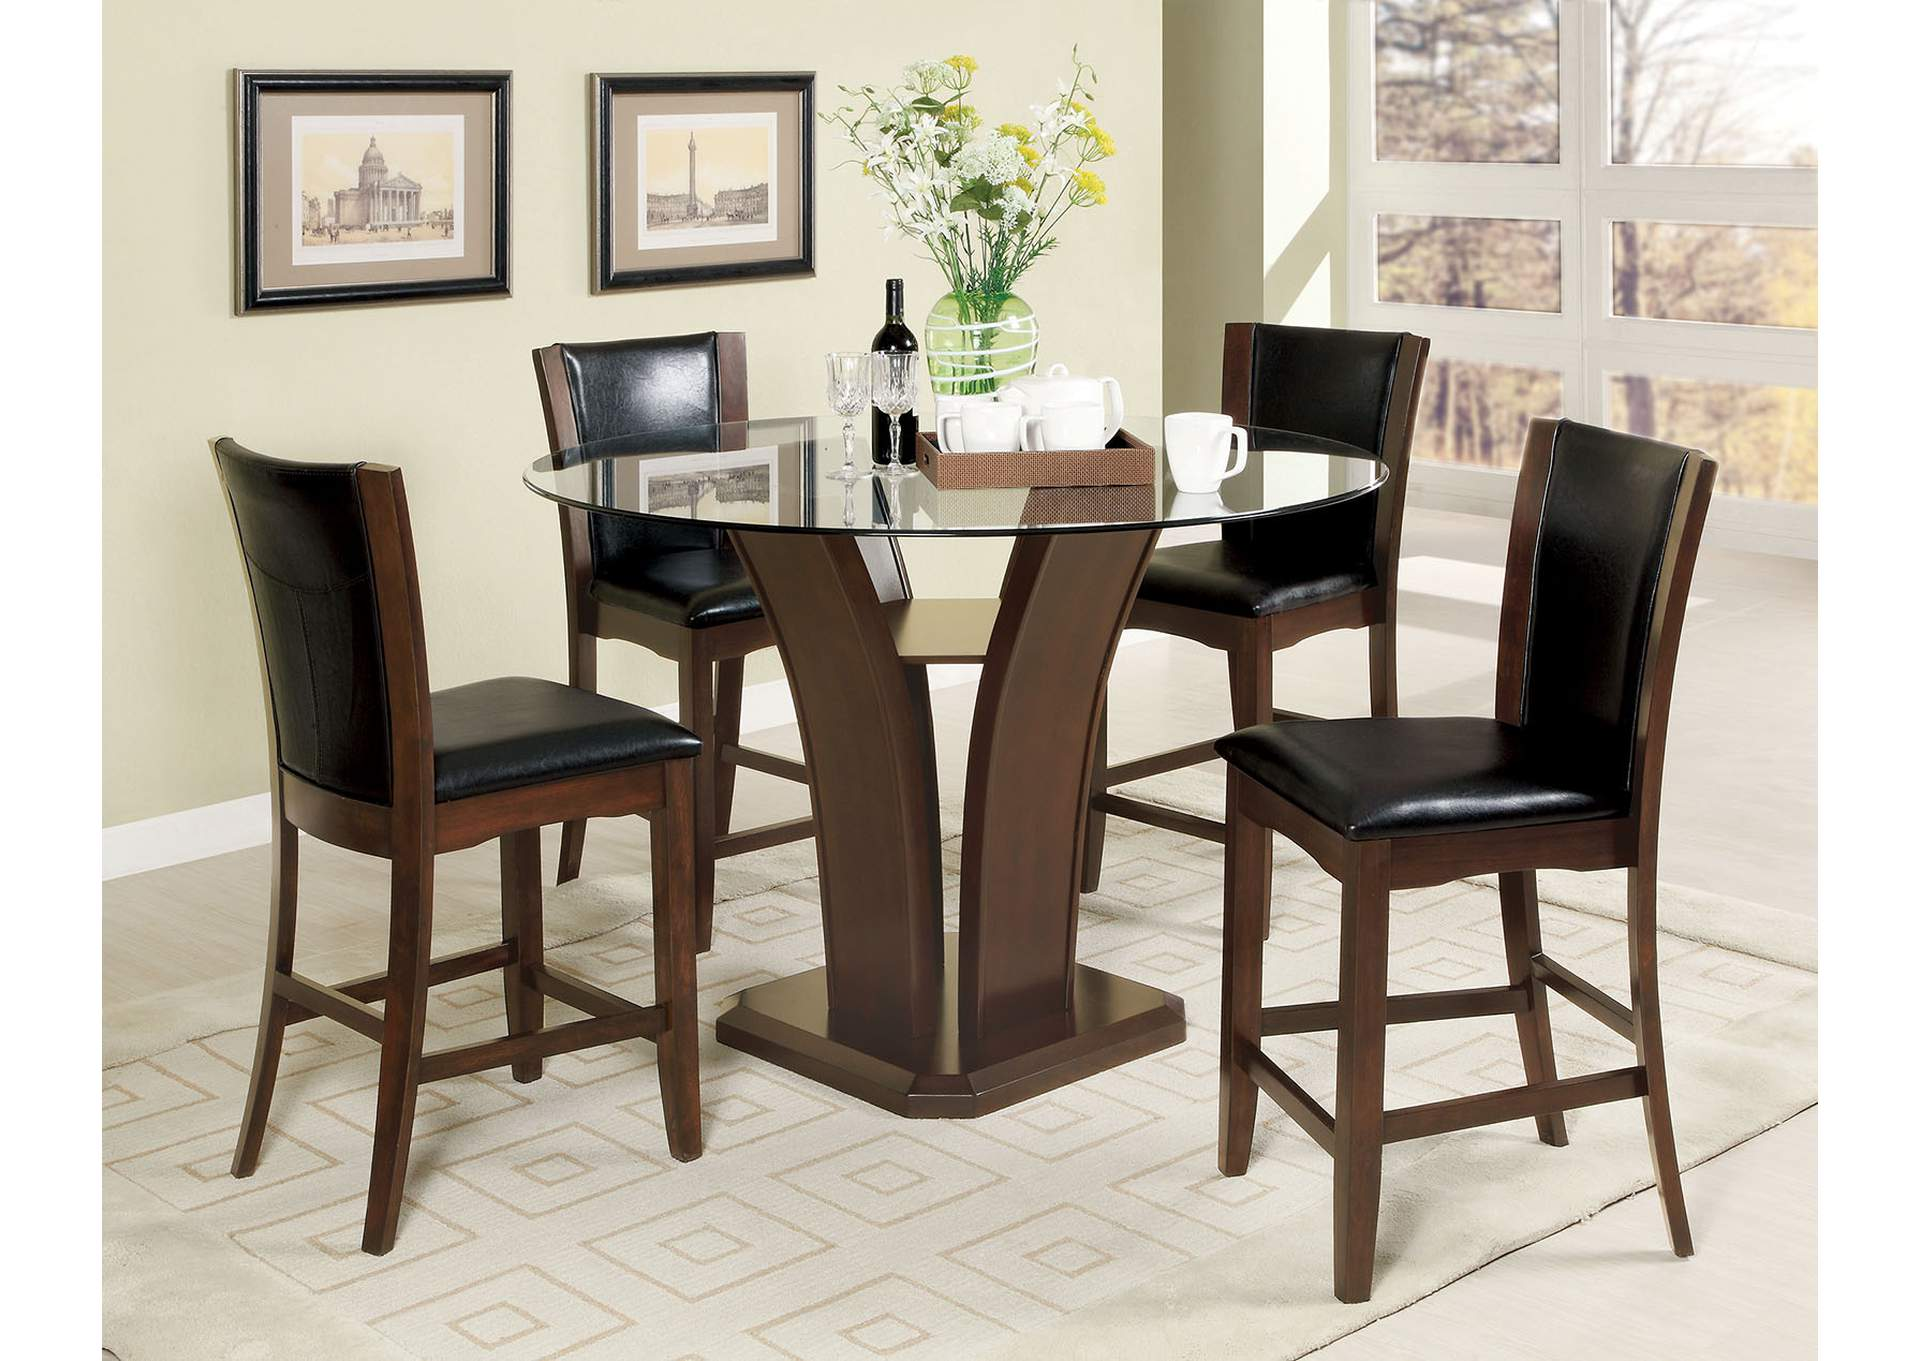 328e4f4c8bf Manhattan lll Round Glass Top Counter Height Table w 2 Counter Height Chairs